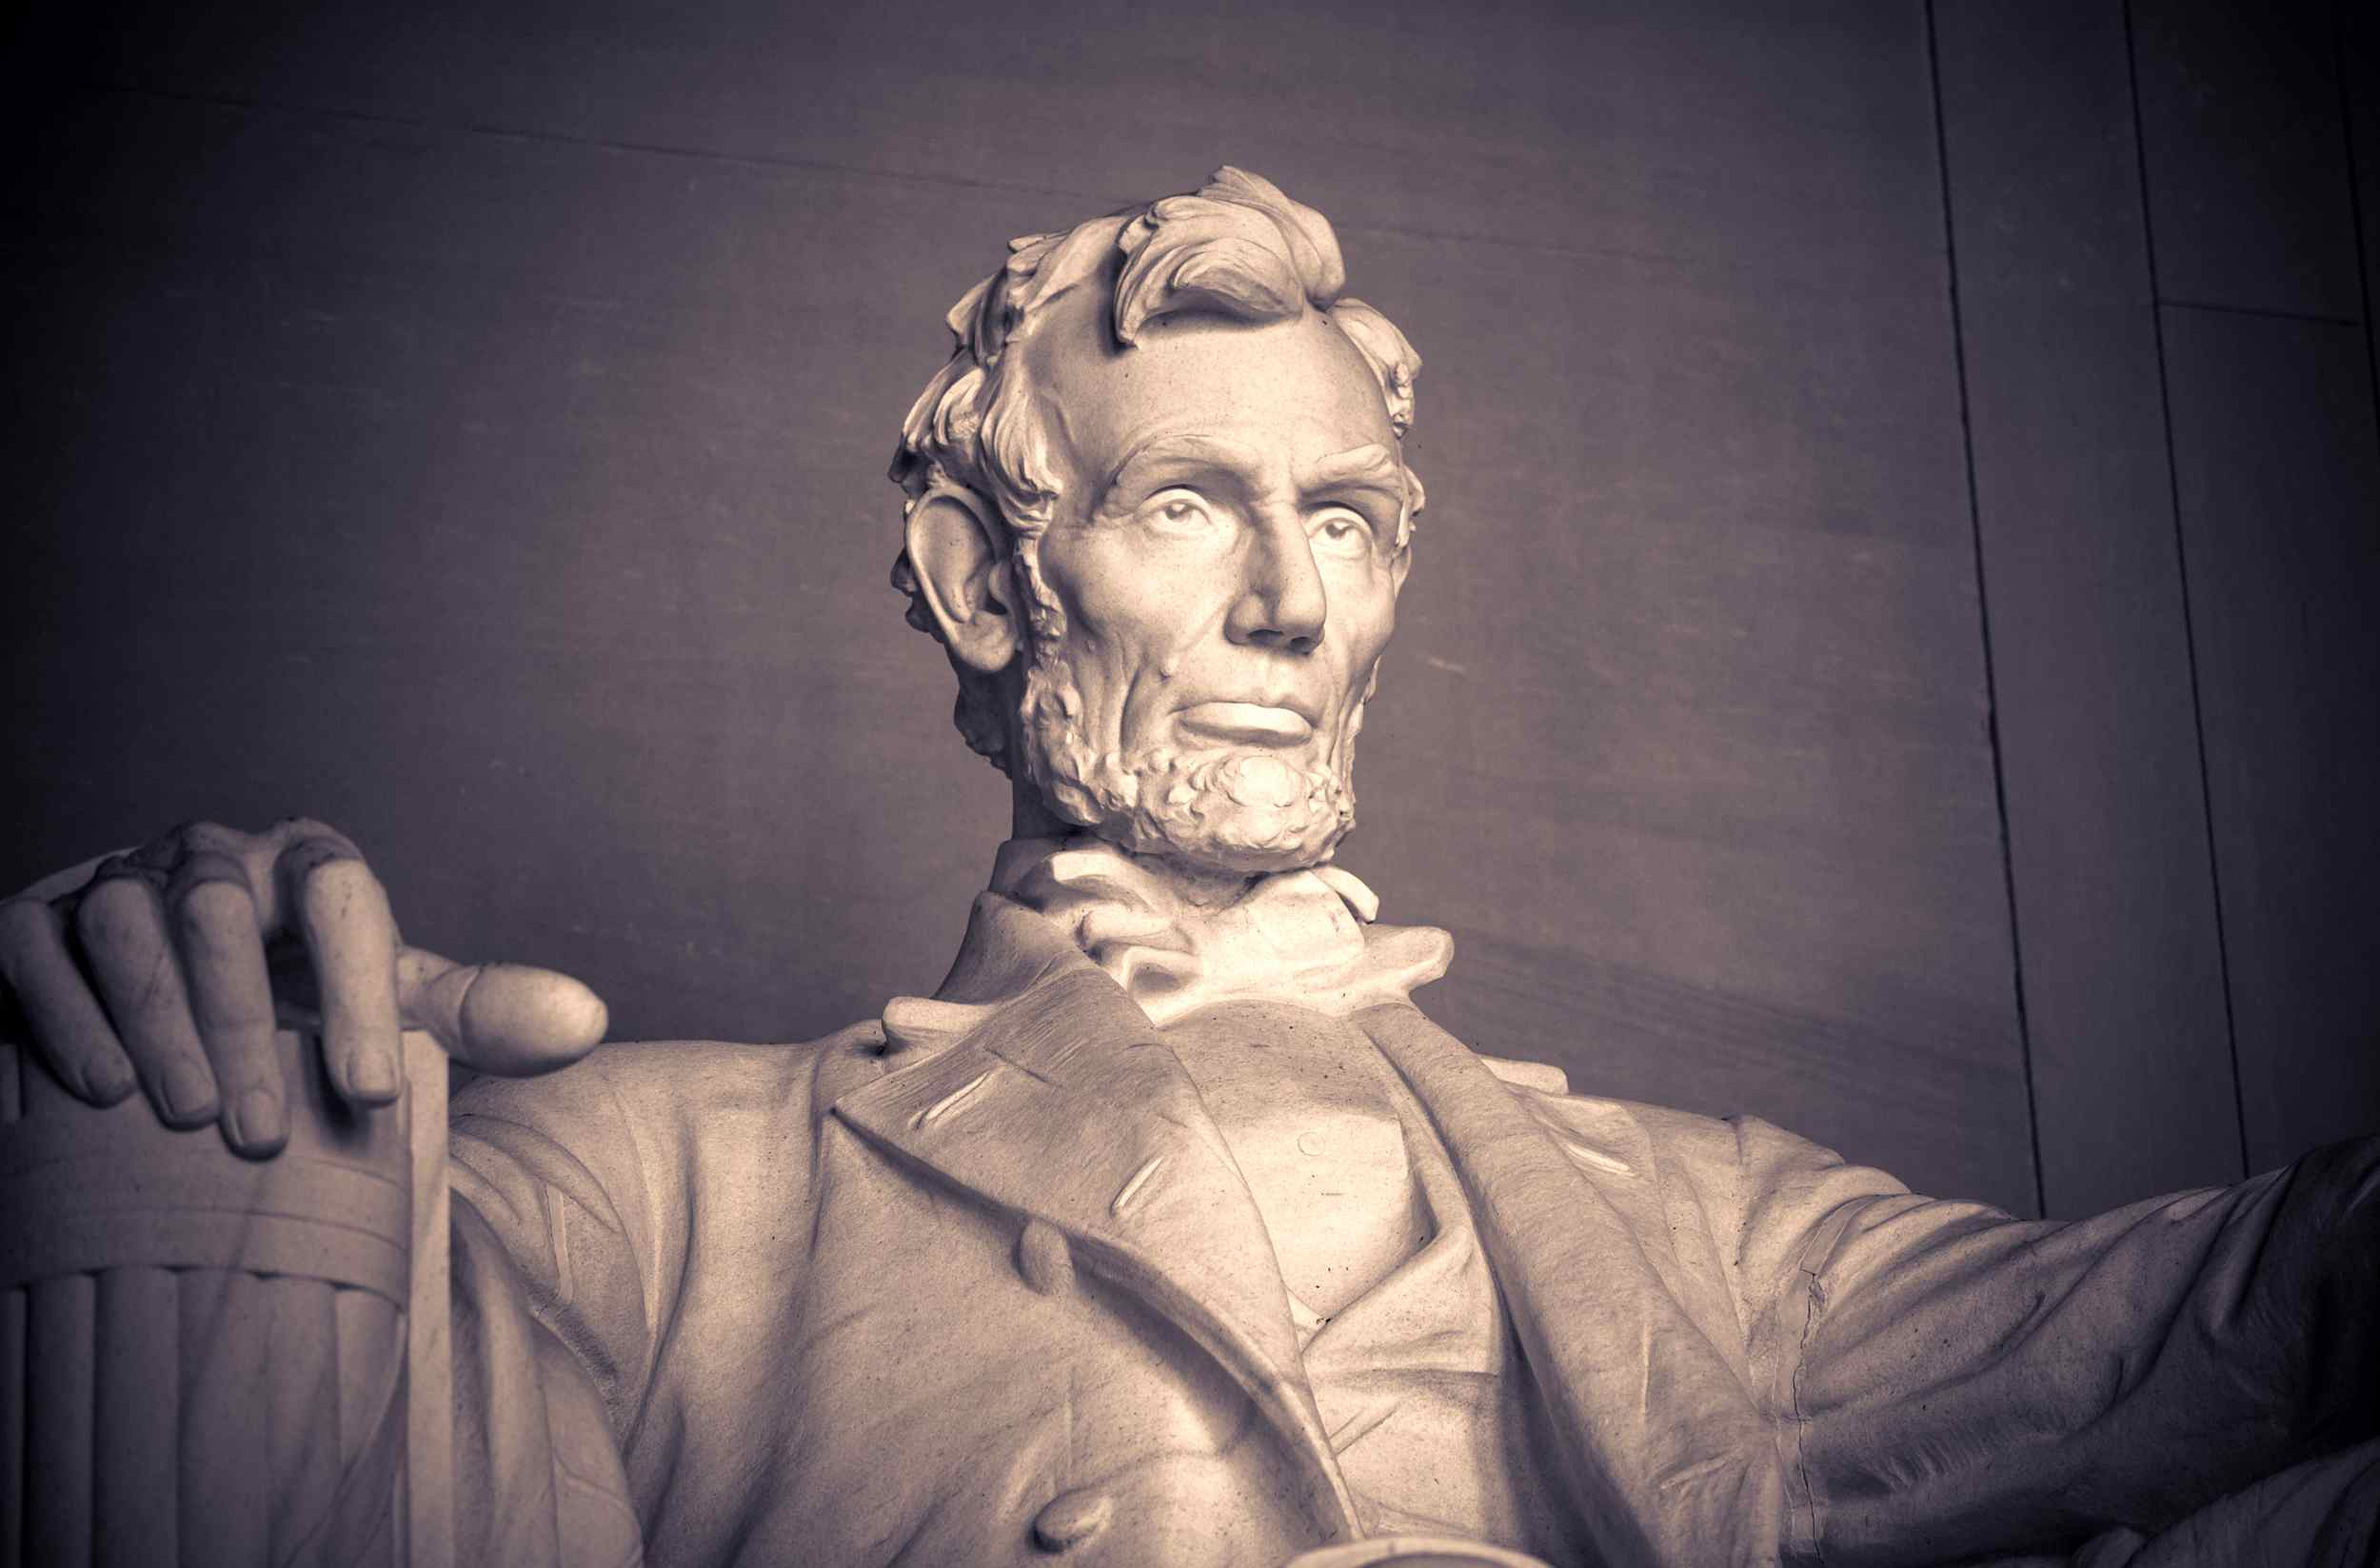 Closeup of the larger than life-size statue of President Abraham Lincoln, Lincoln Memorial